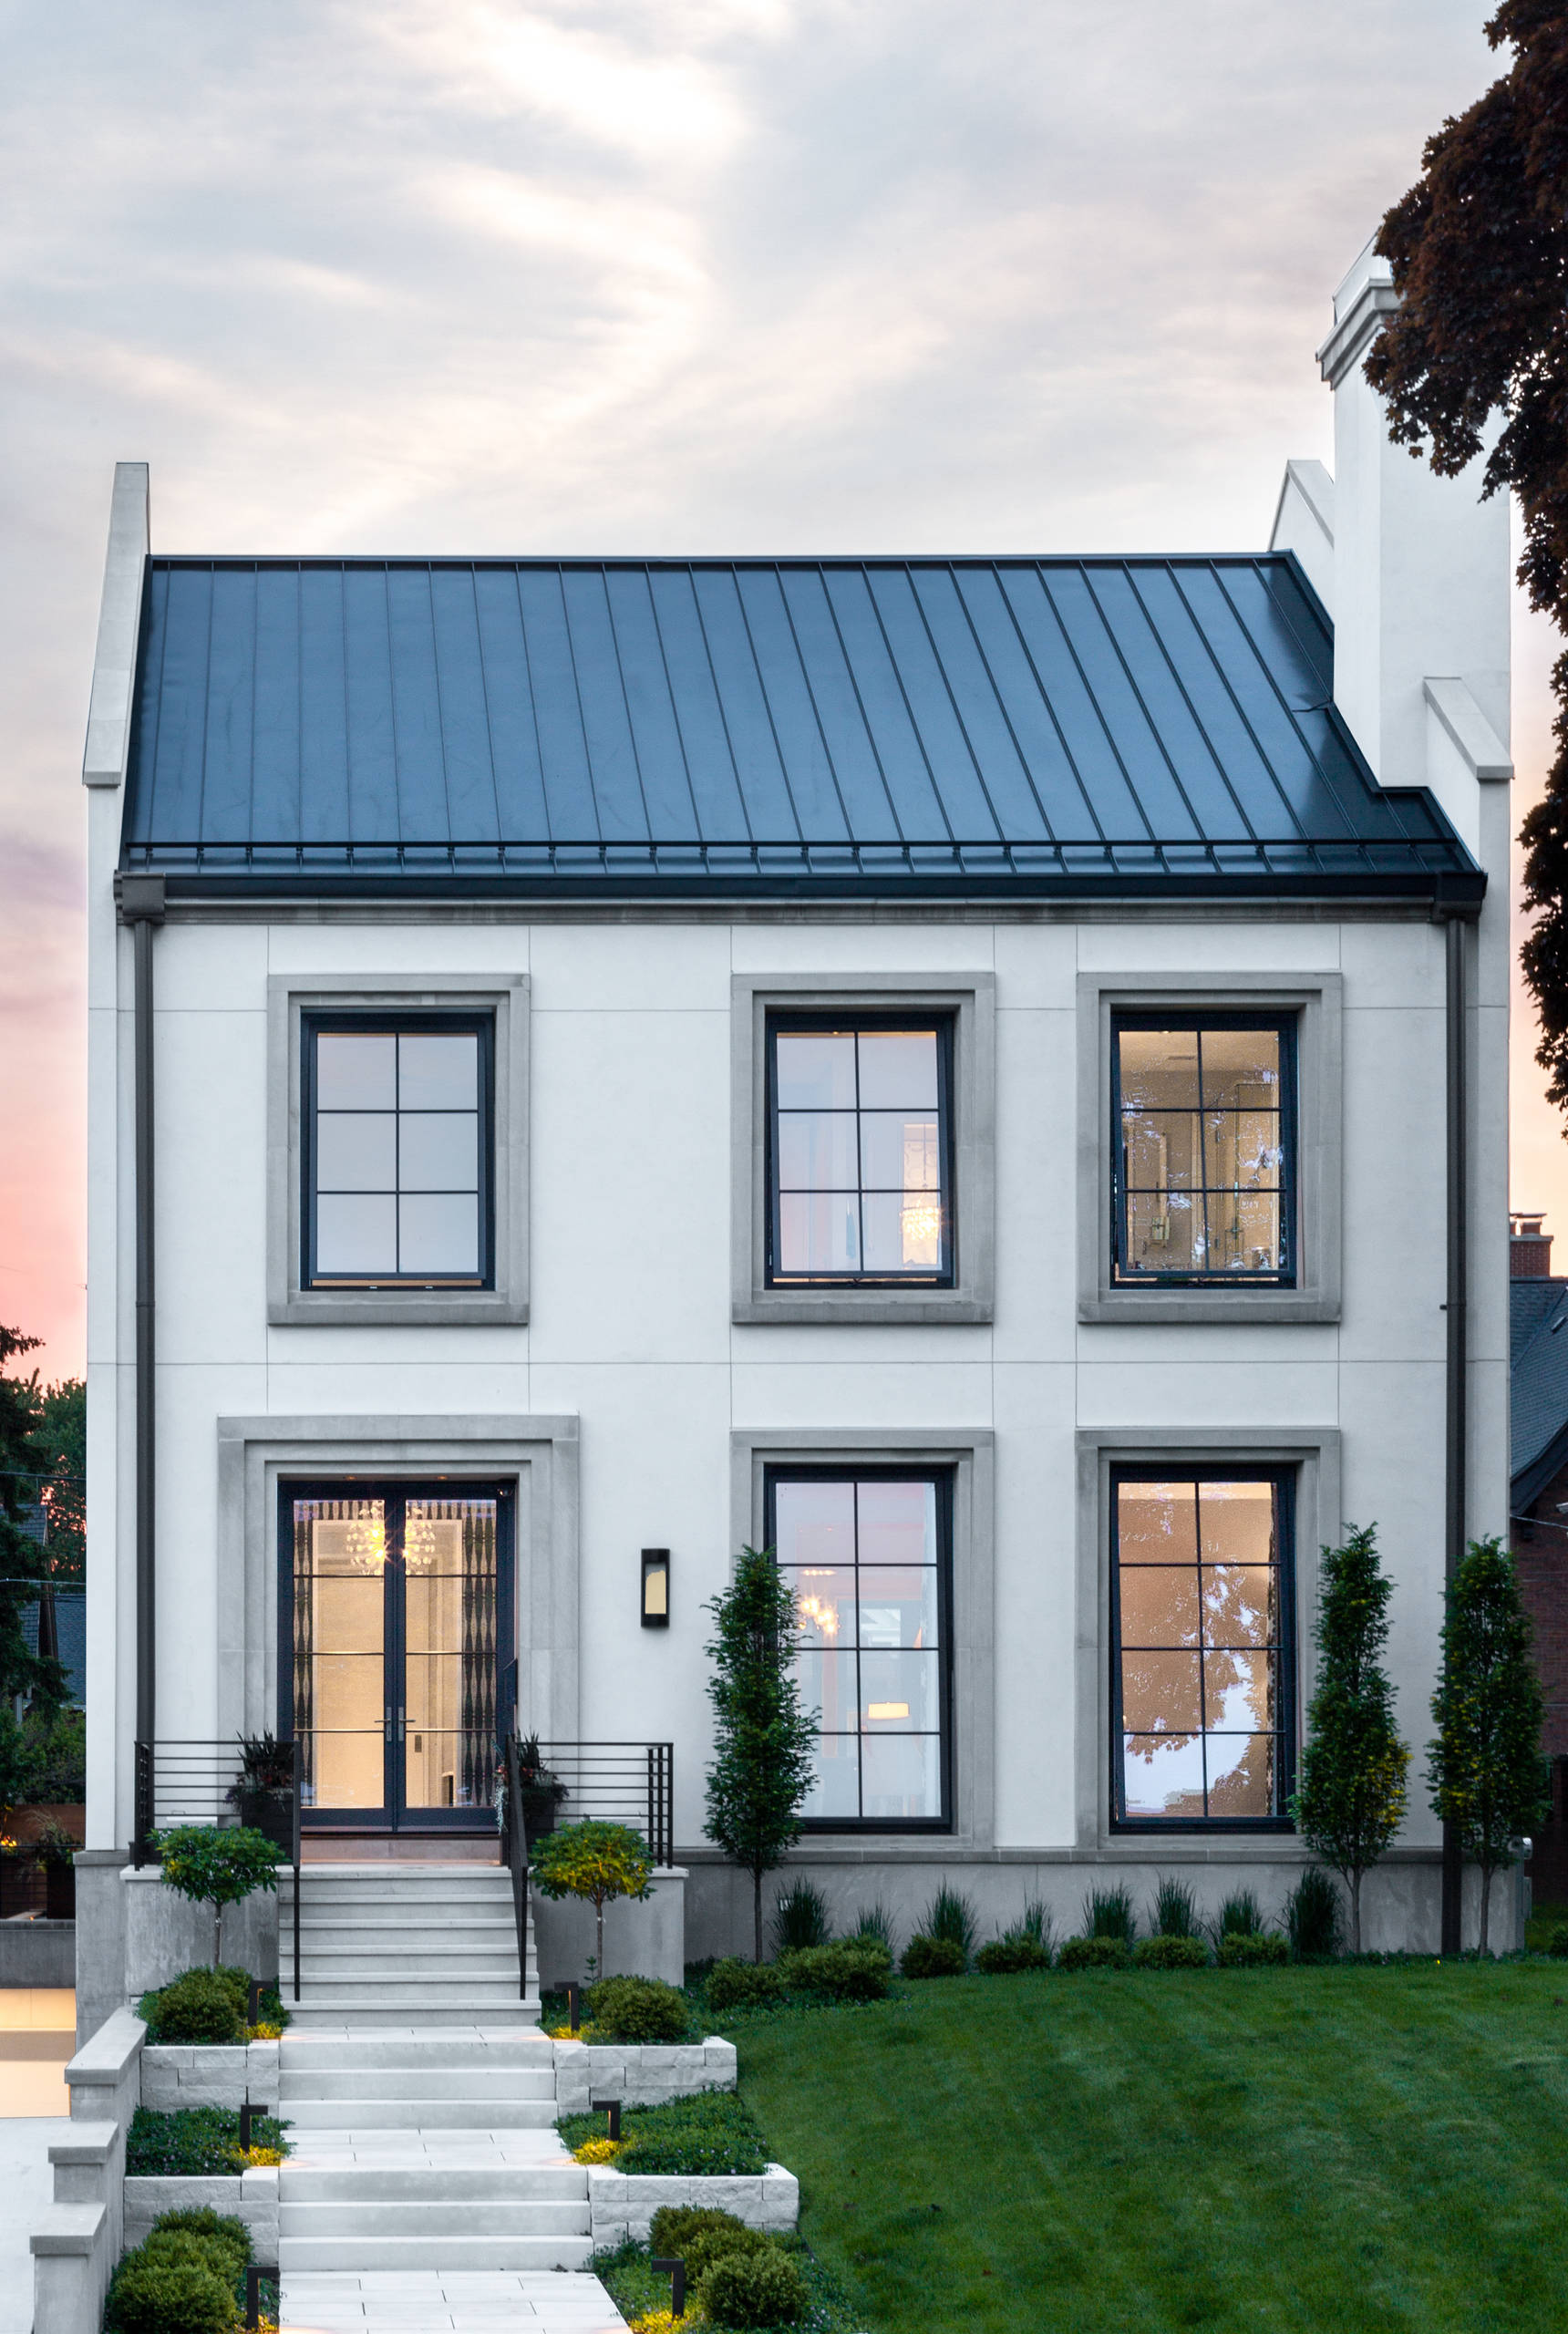 75 Beautiful Contemporary Gable Roof Pictures Ideas October 2020 Houzz